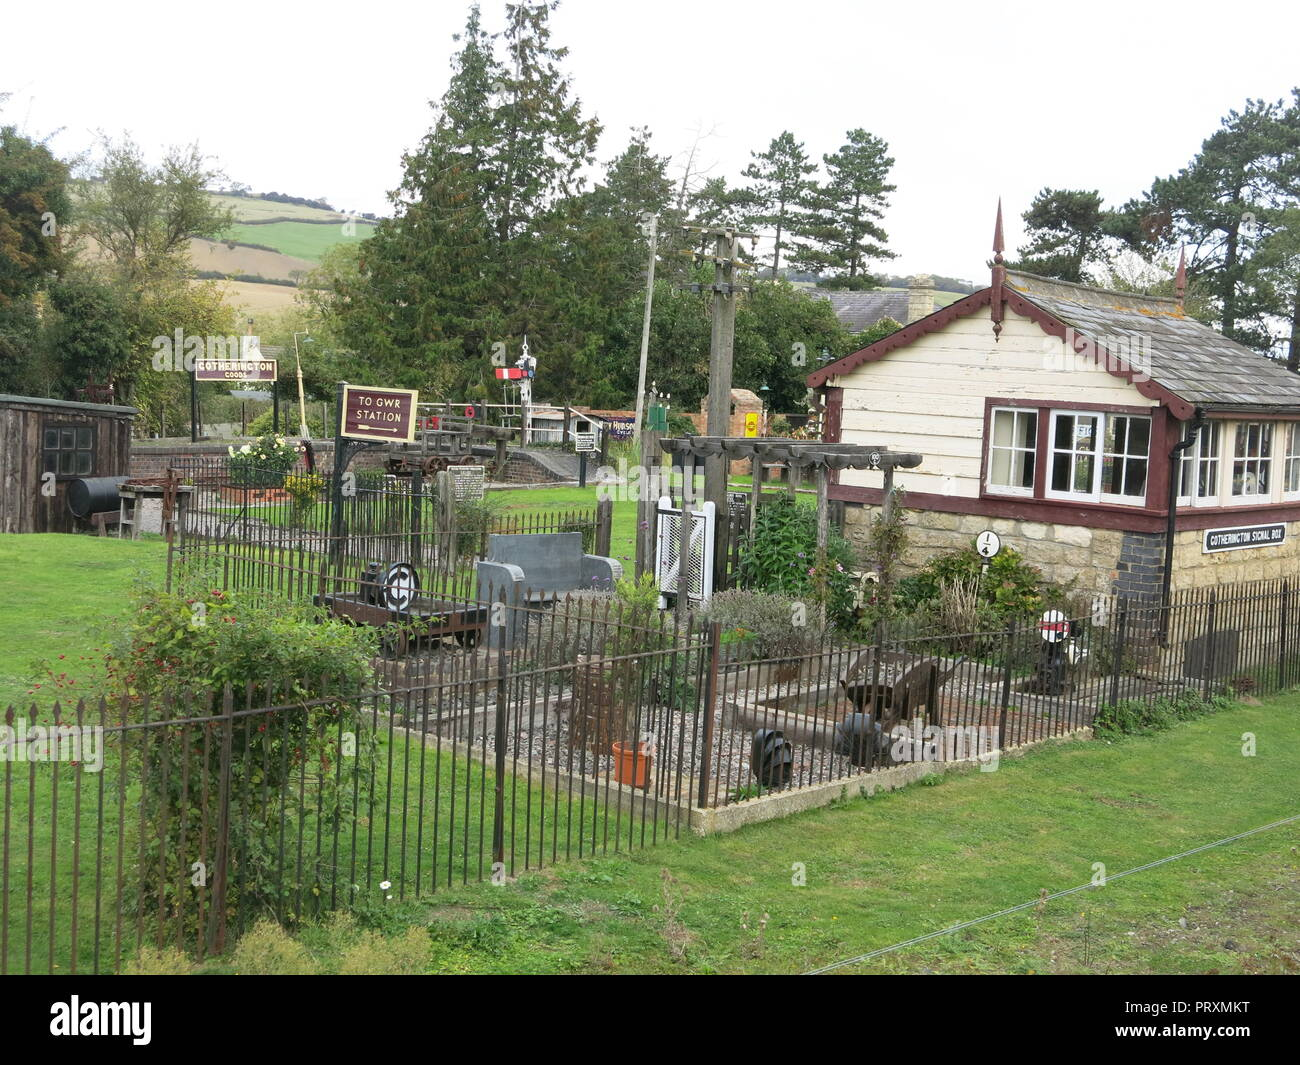 The platform & former station at Gotherington is adorned with colourful pots of flowers & hanging baskets: Gloucestershire Warwickshire Steam Railway - Stock Image